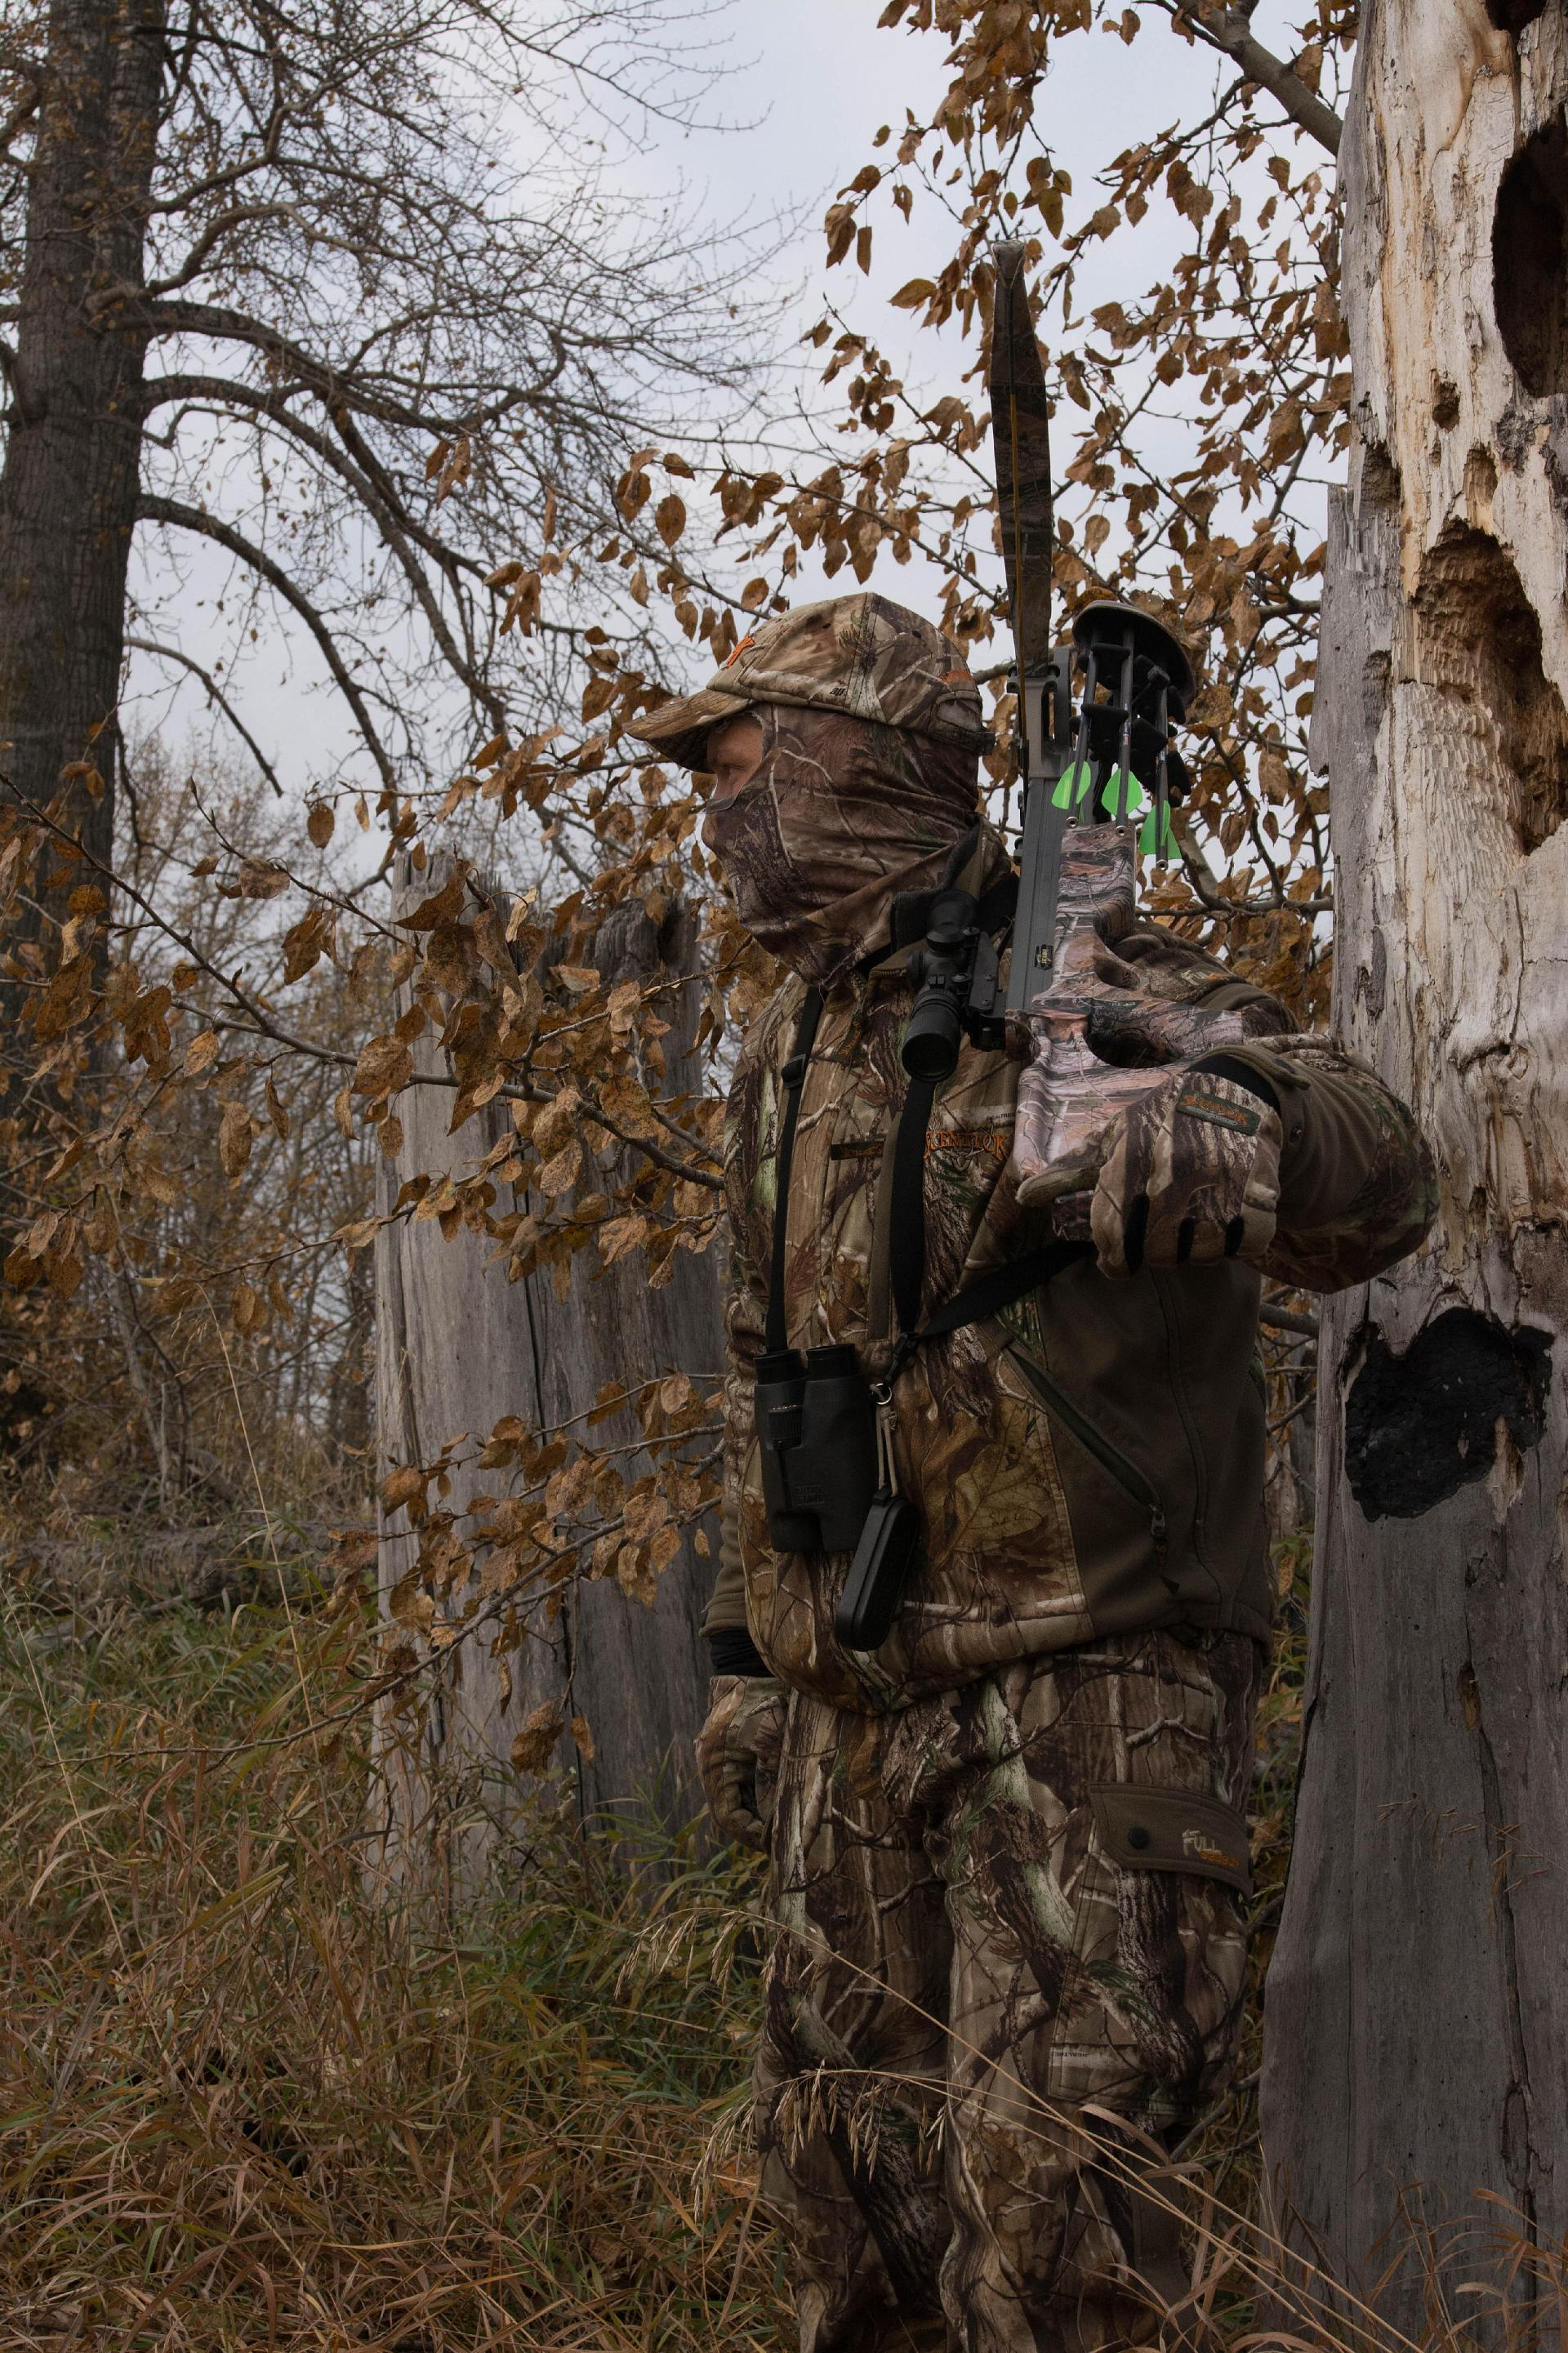 Crossbows should be treated like rifles in the field.